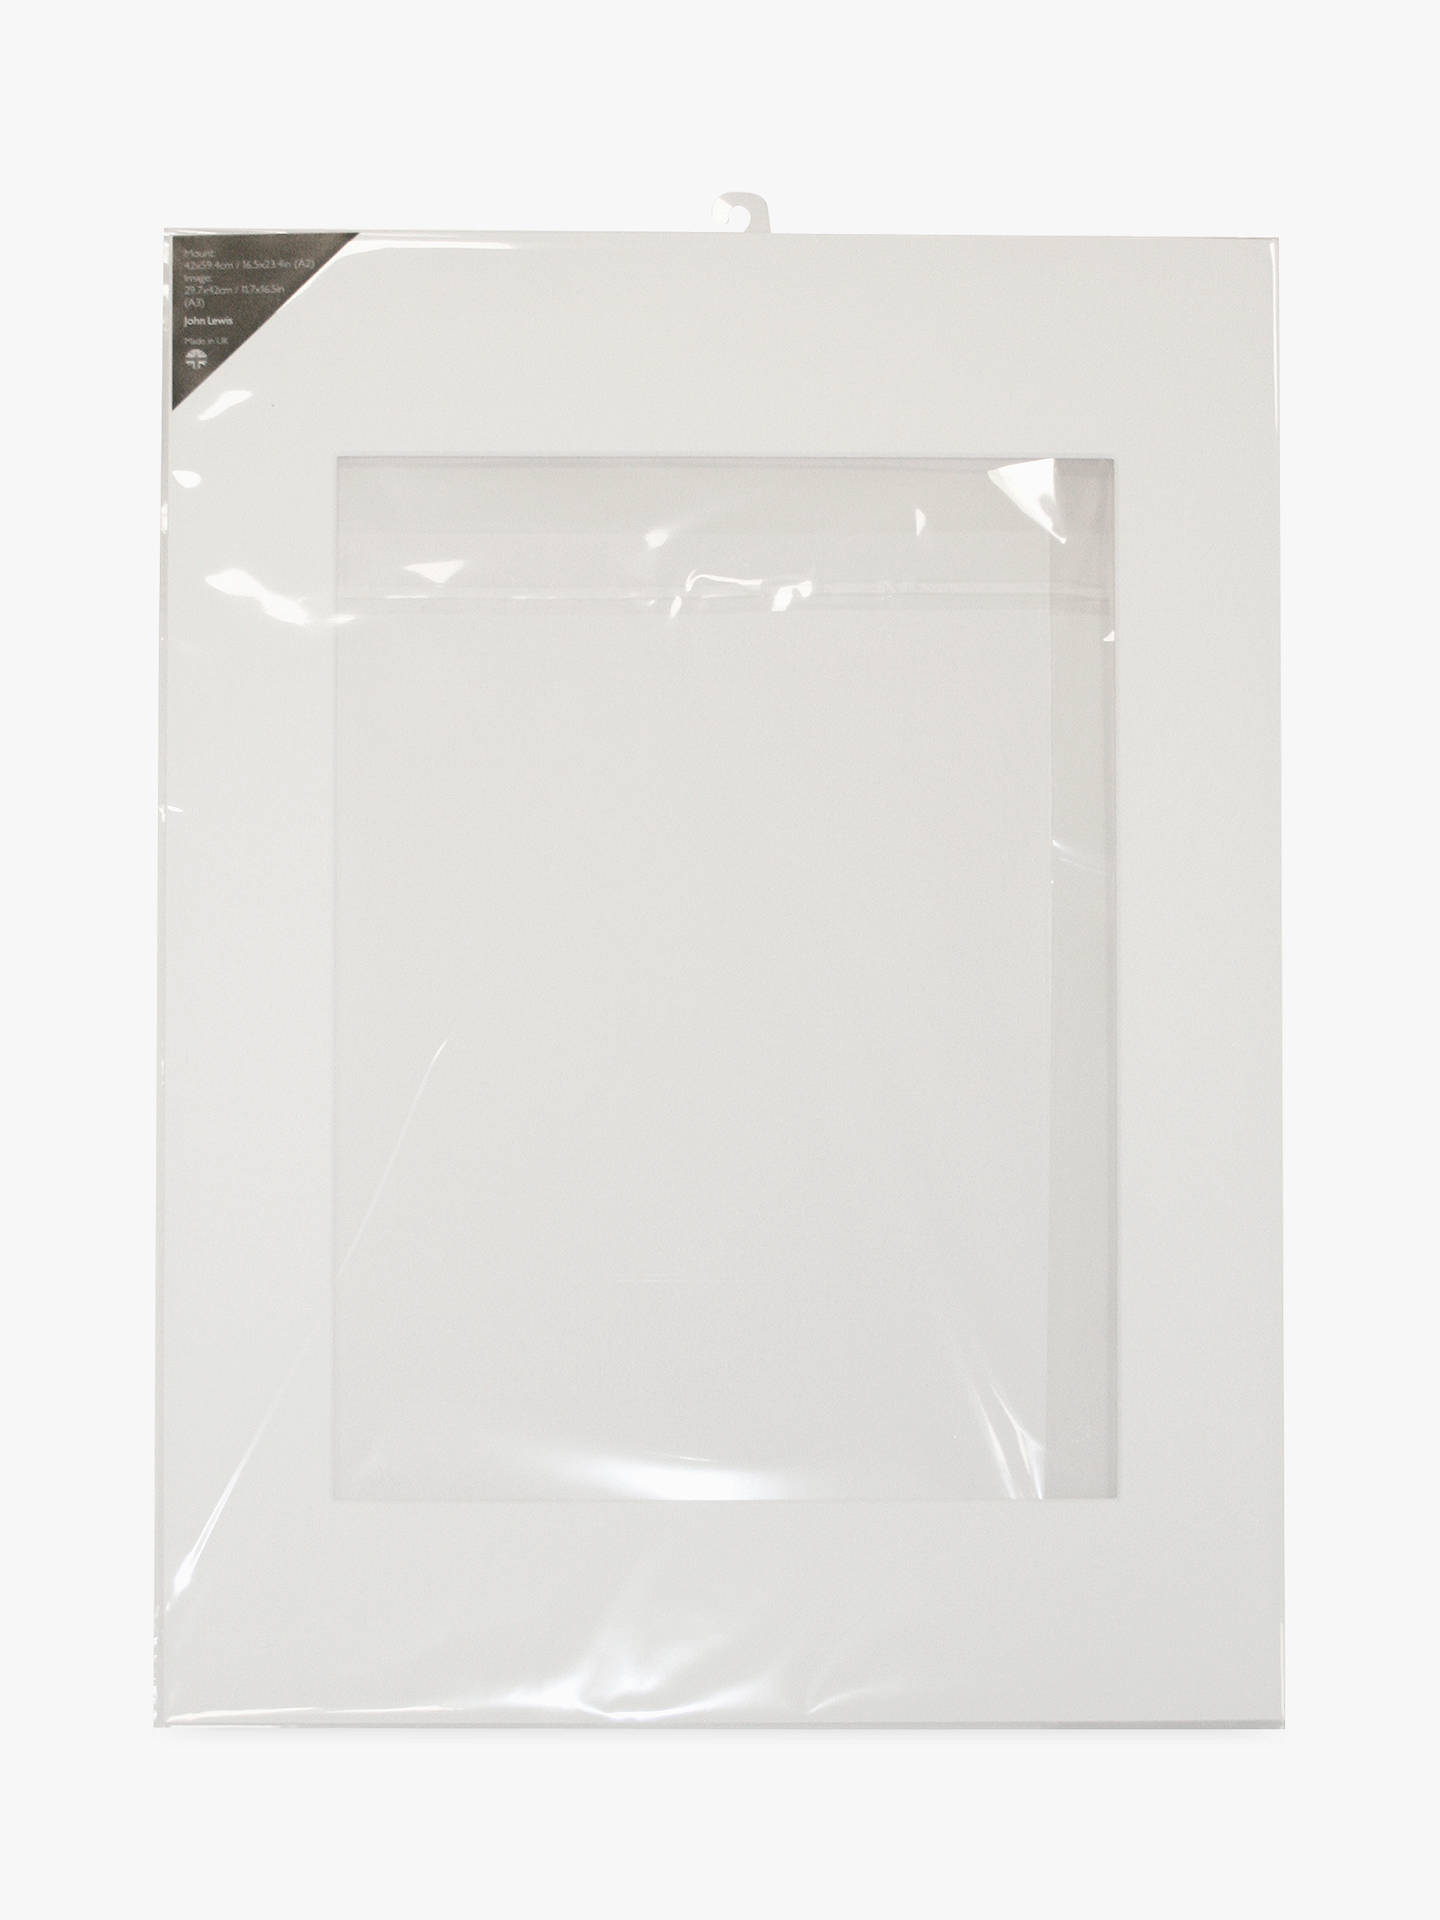 John Lewis & Partners Photo Mount A3 (30 x 42cm) Image for A2 Frame ...